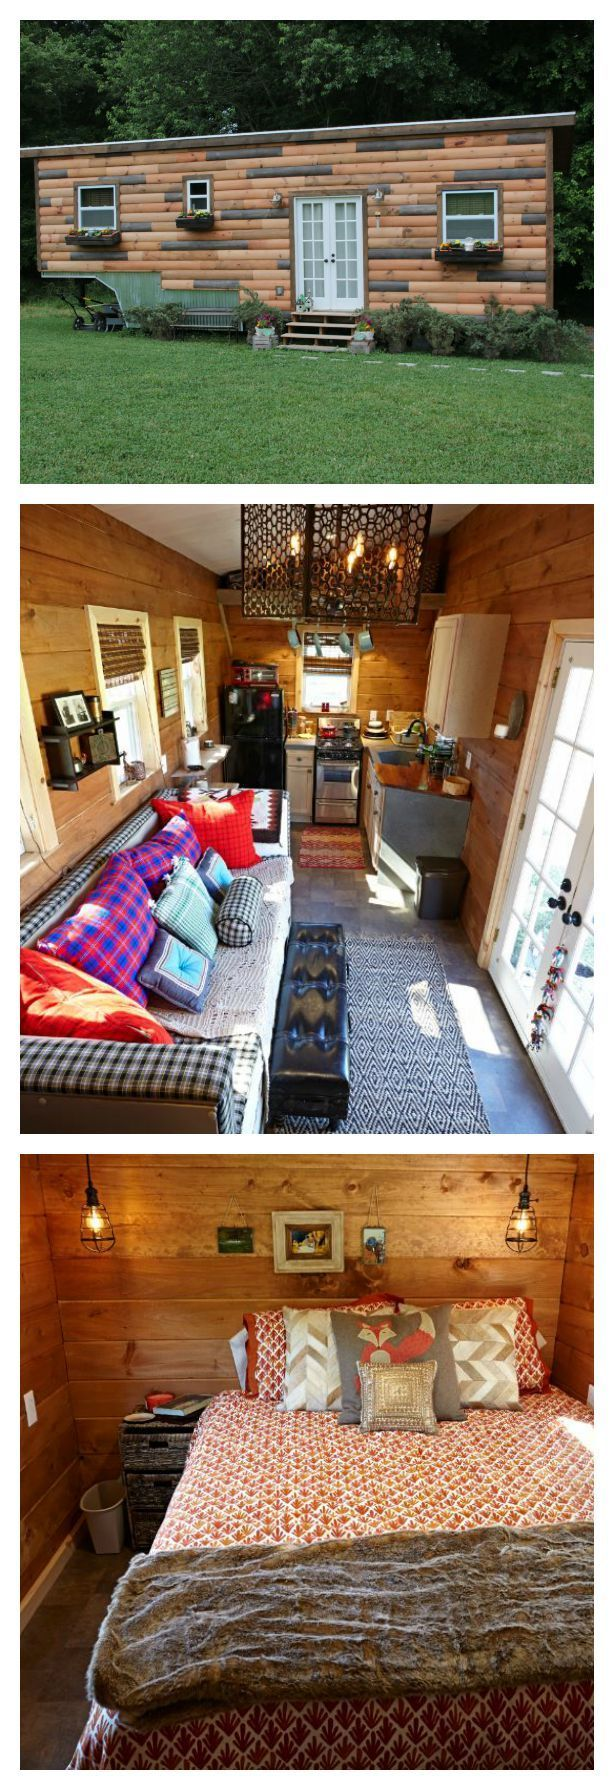 "Every square inch of space is utilized in this tiny home. Enough so that a 6'6"" tall man lives in this tiny trailer, can you believe it?"